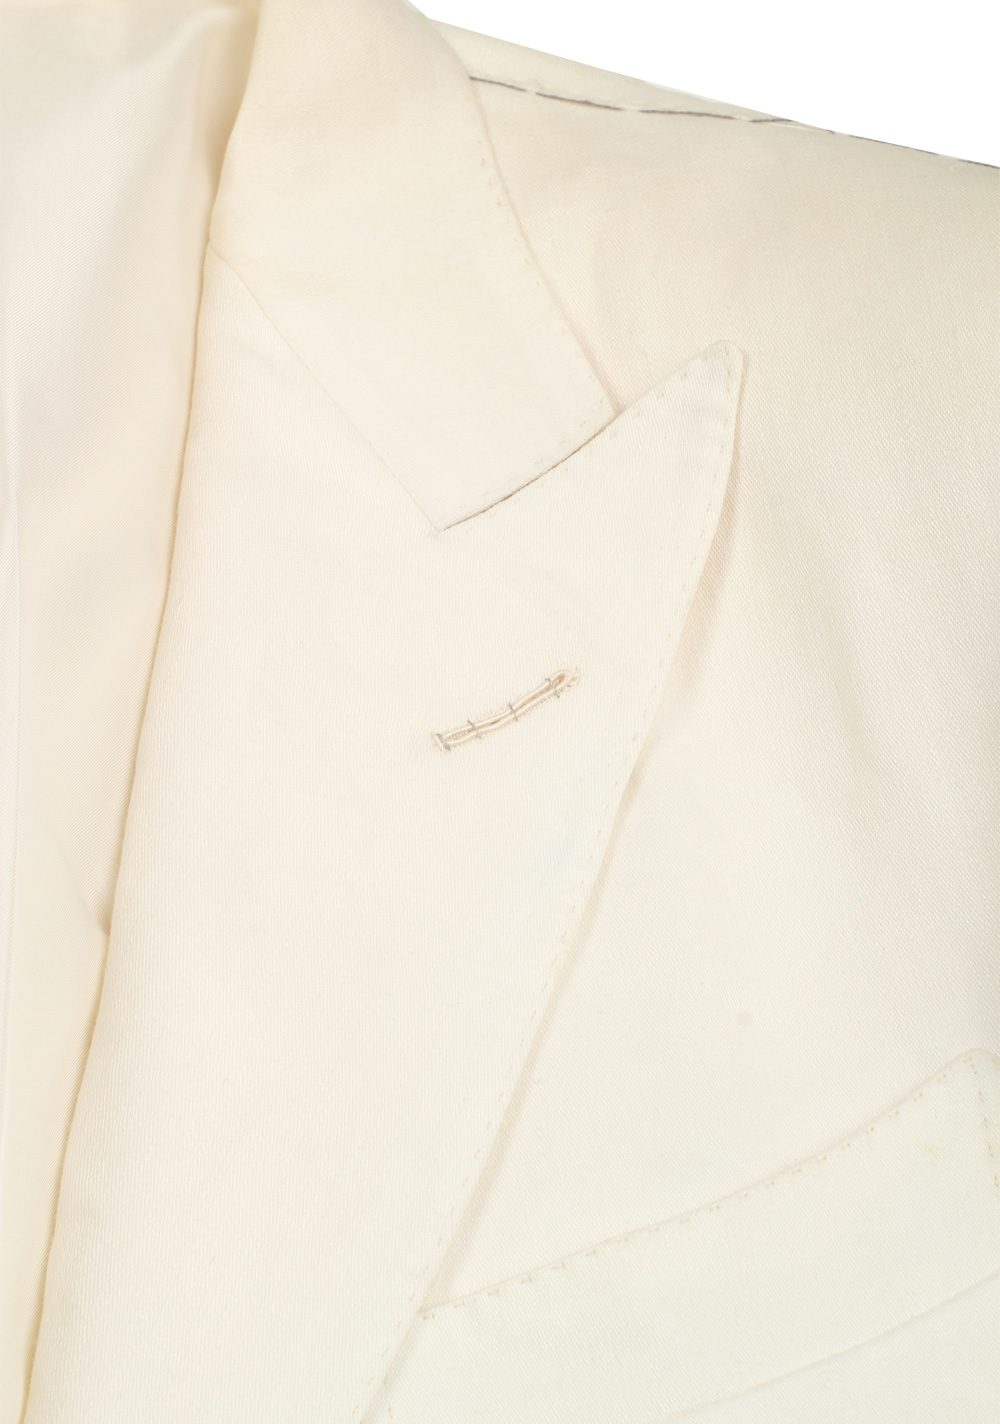 TOM FORD Regency Solid Off White Suit Size 46 / 36R U.S. Linen Base B | Costume Limité